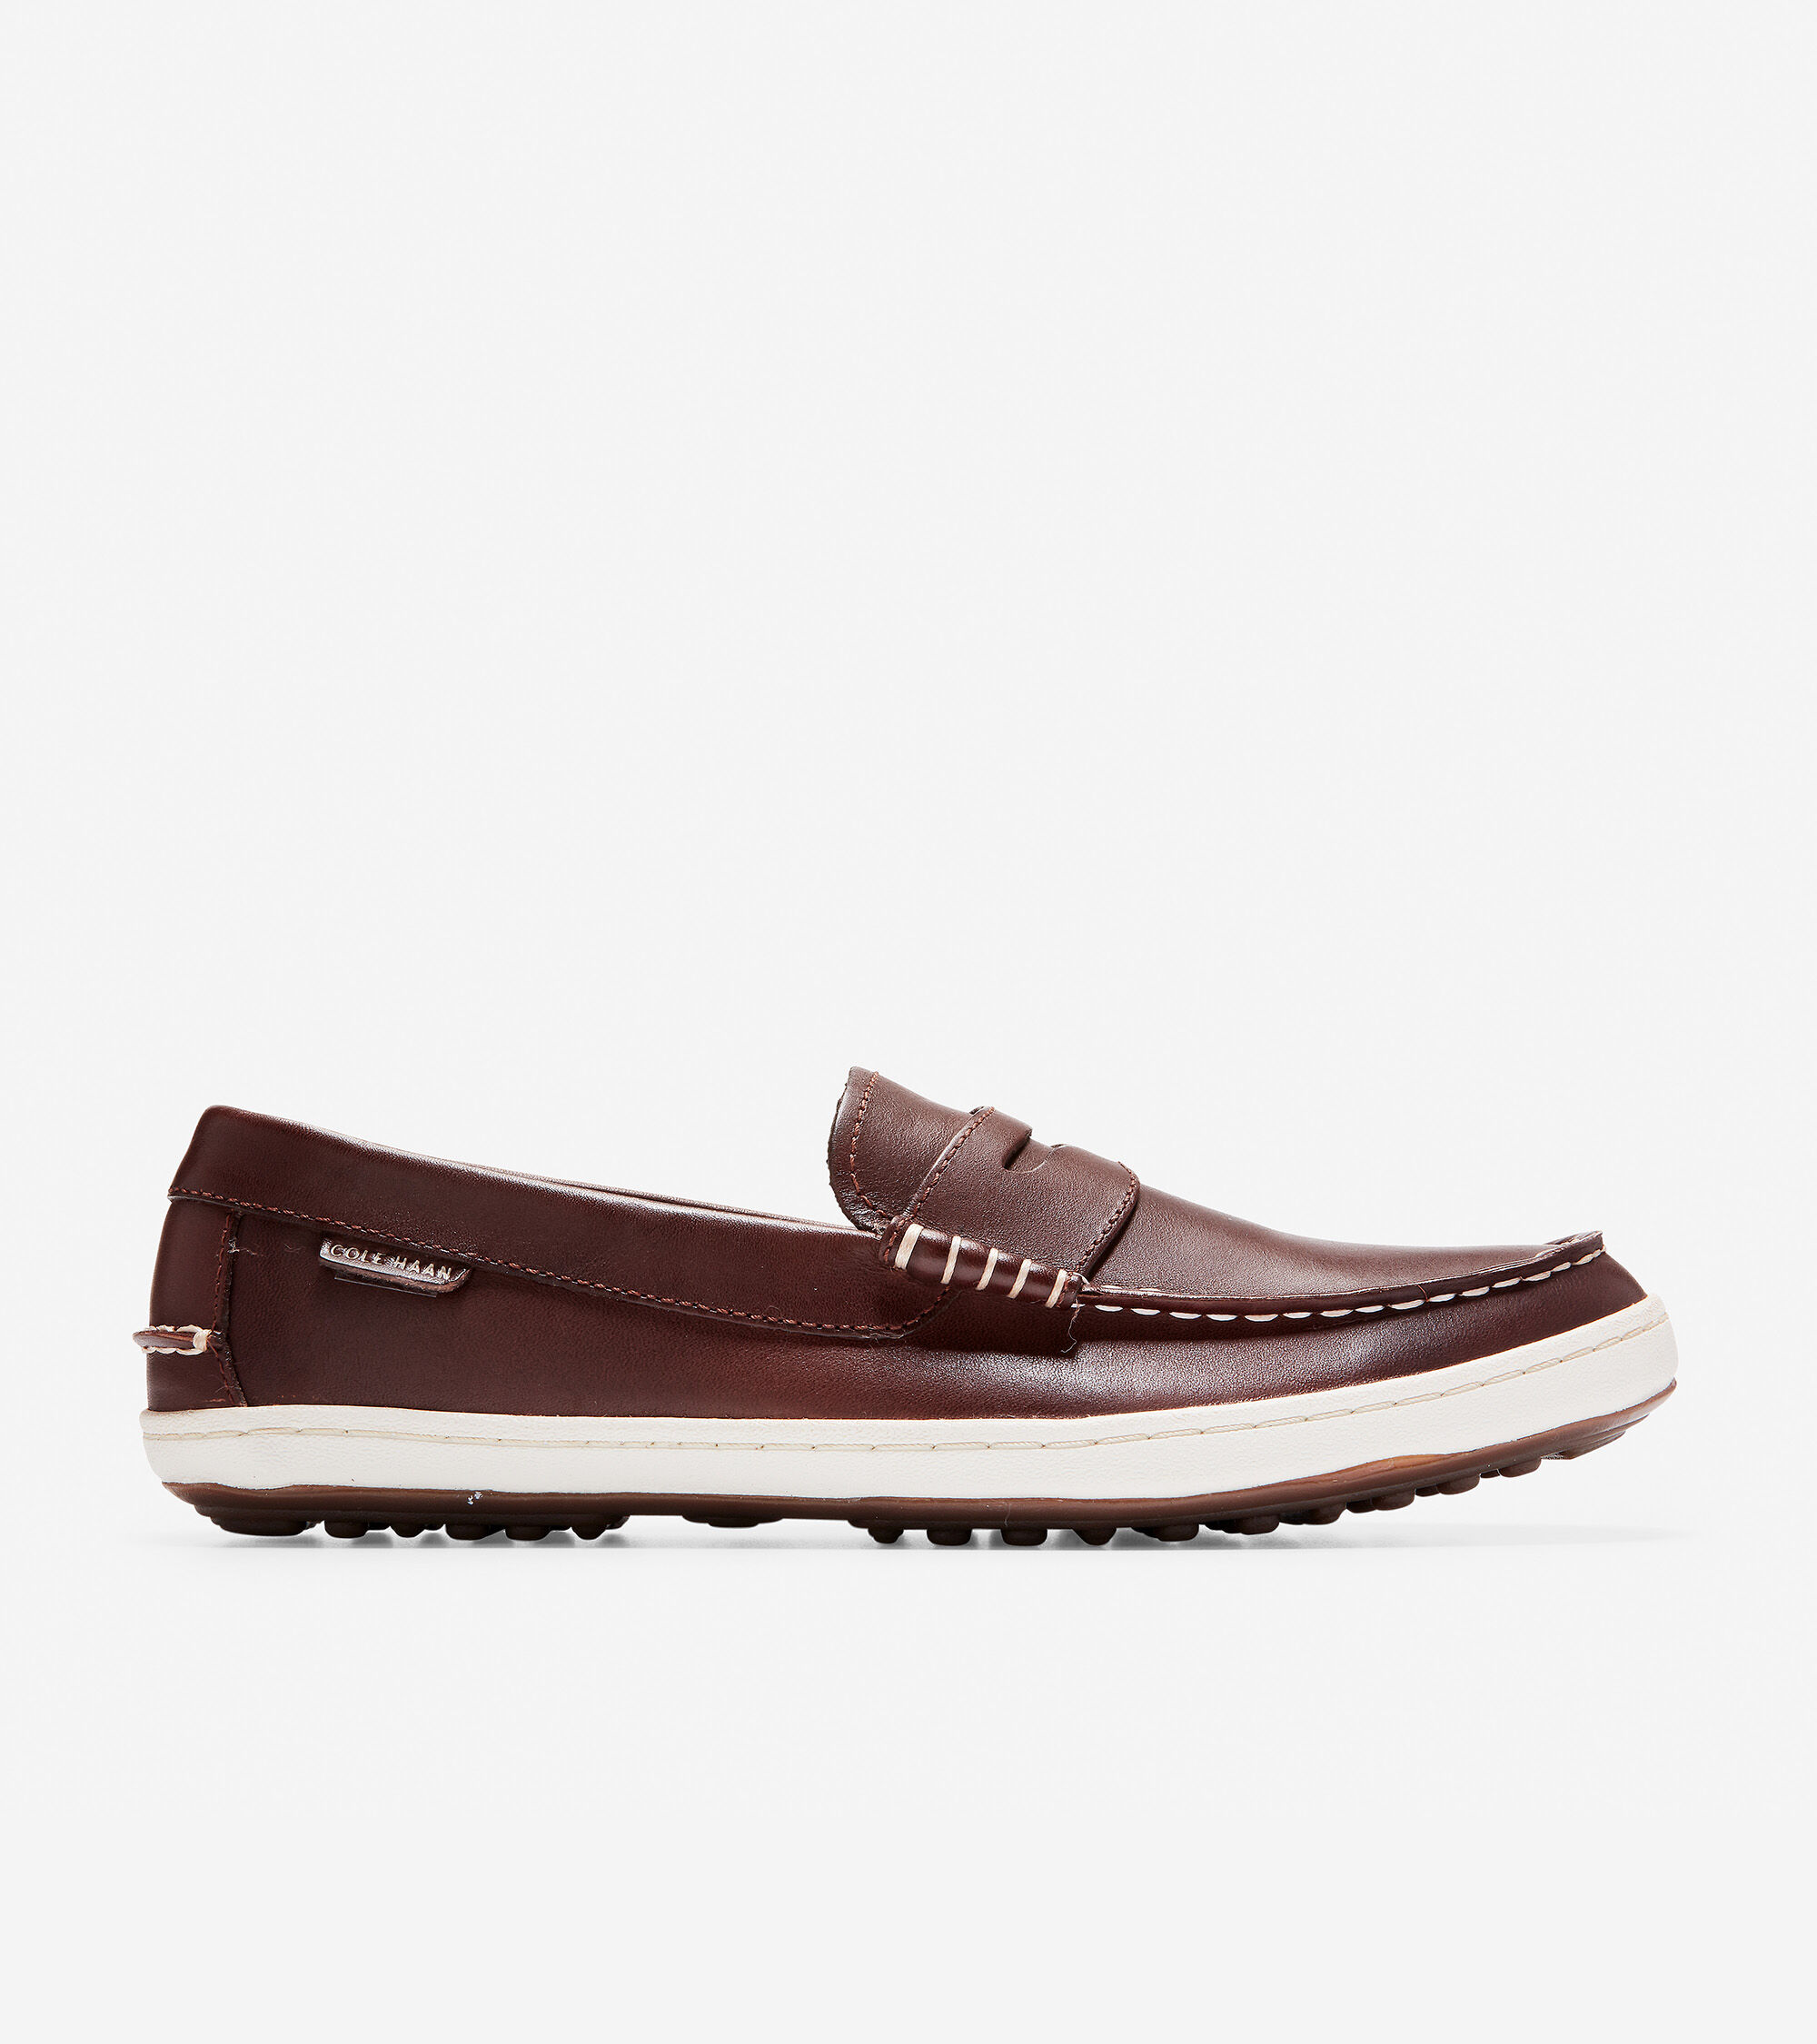 270e17726e5 Men s Pinch Weekender Roadtrip Penny Loafers in Woodbury